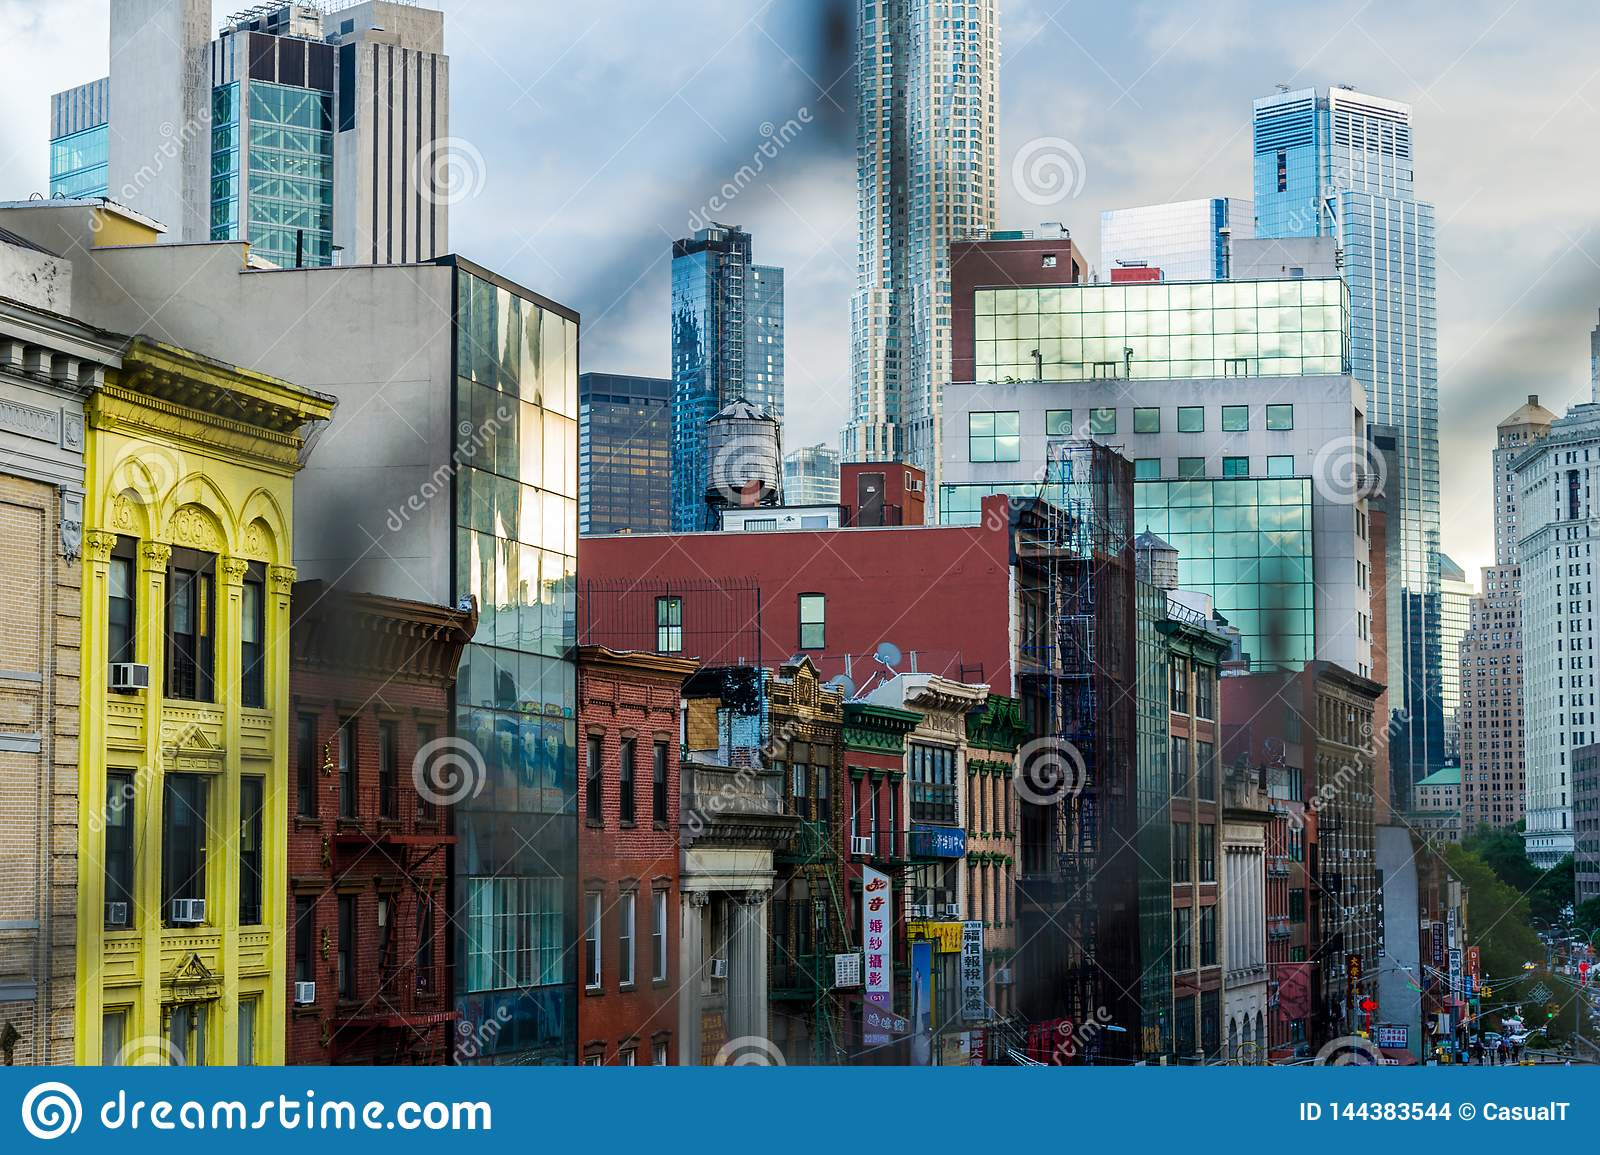 New York City, NY / USA - 08/01/2018: Buildings along East Broadway, in New York City`s Chinatown district, Downtown